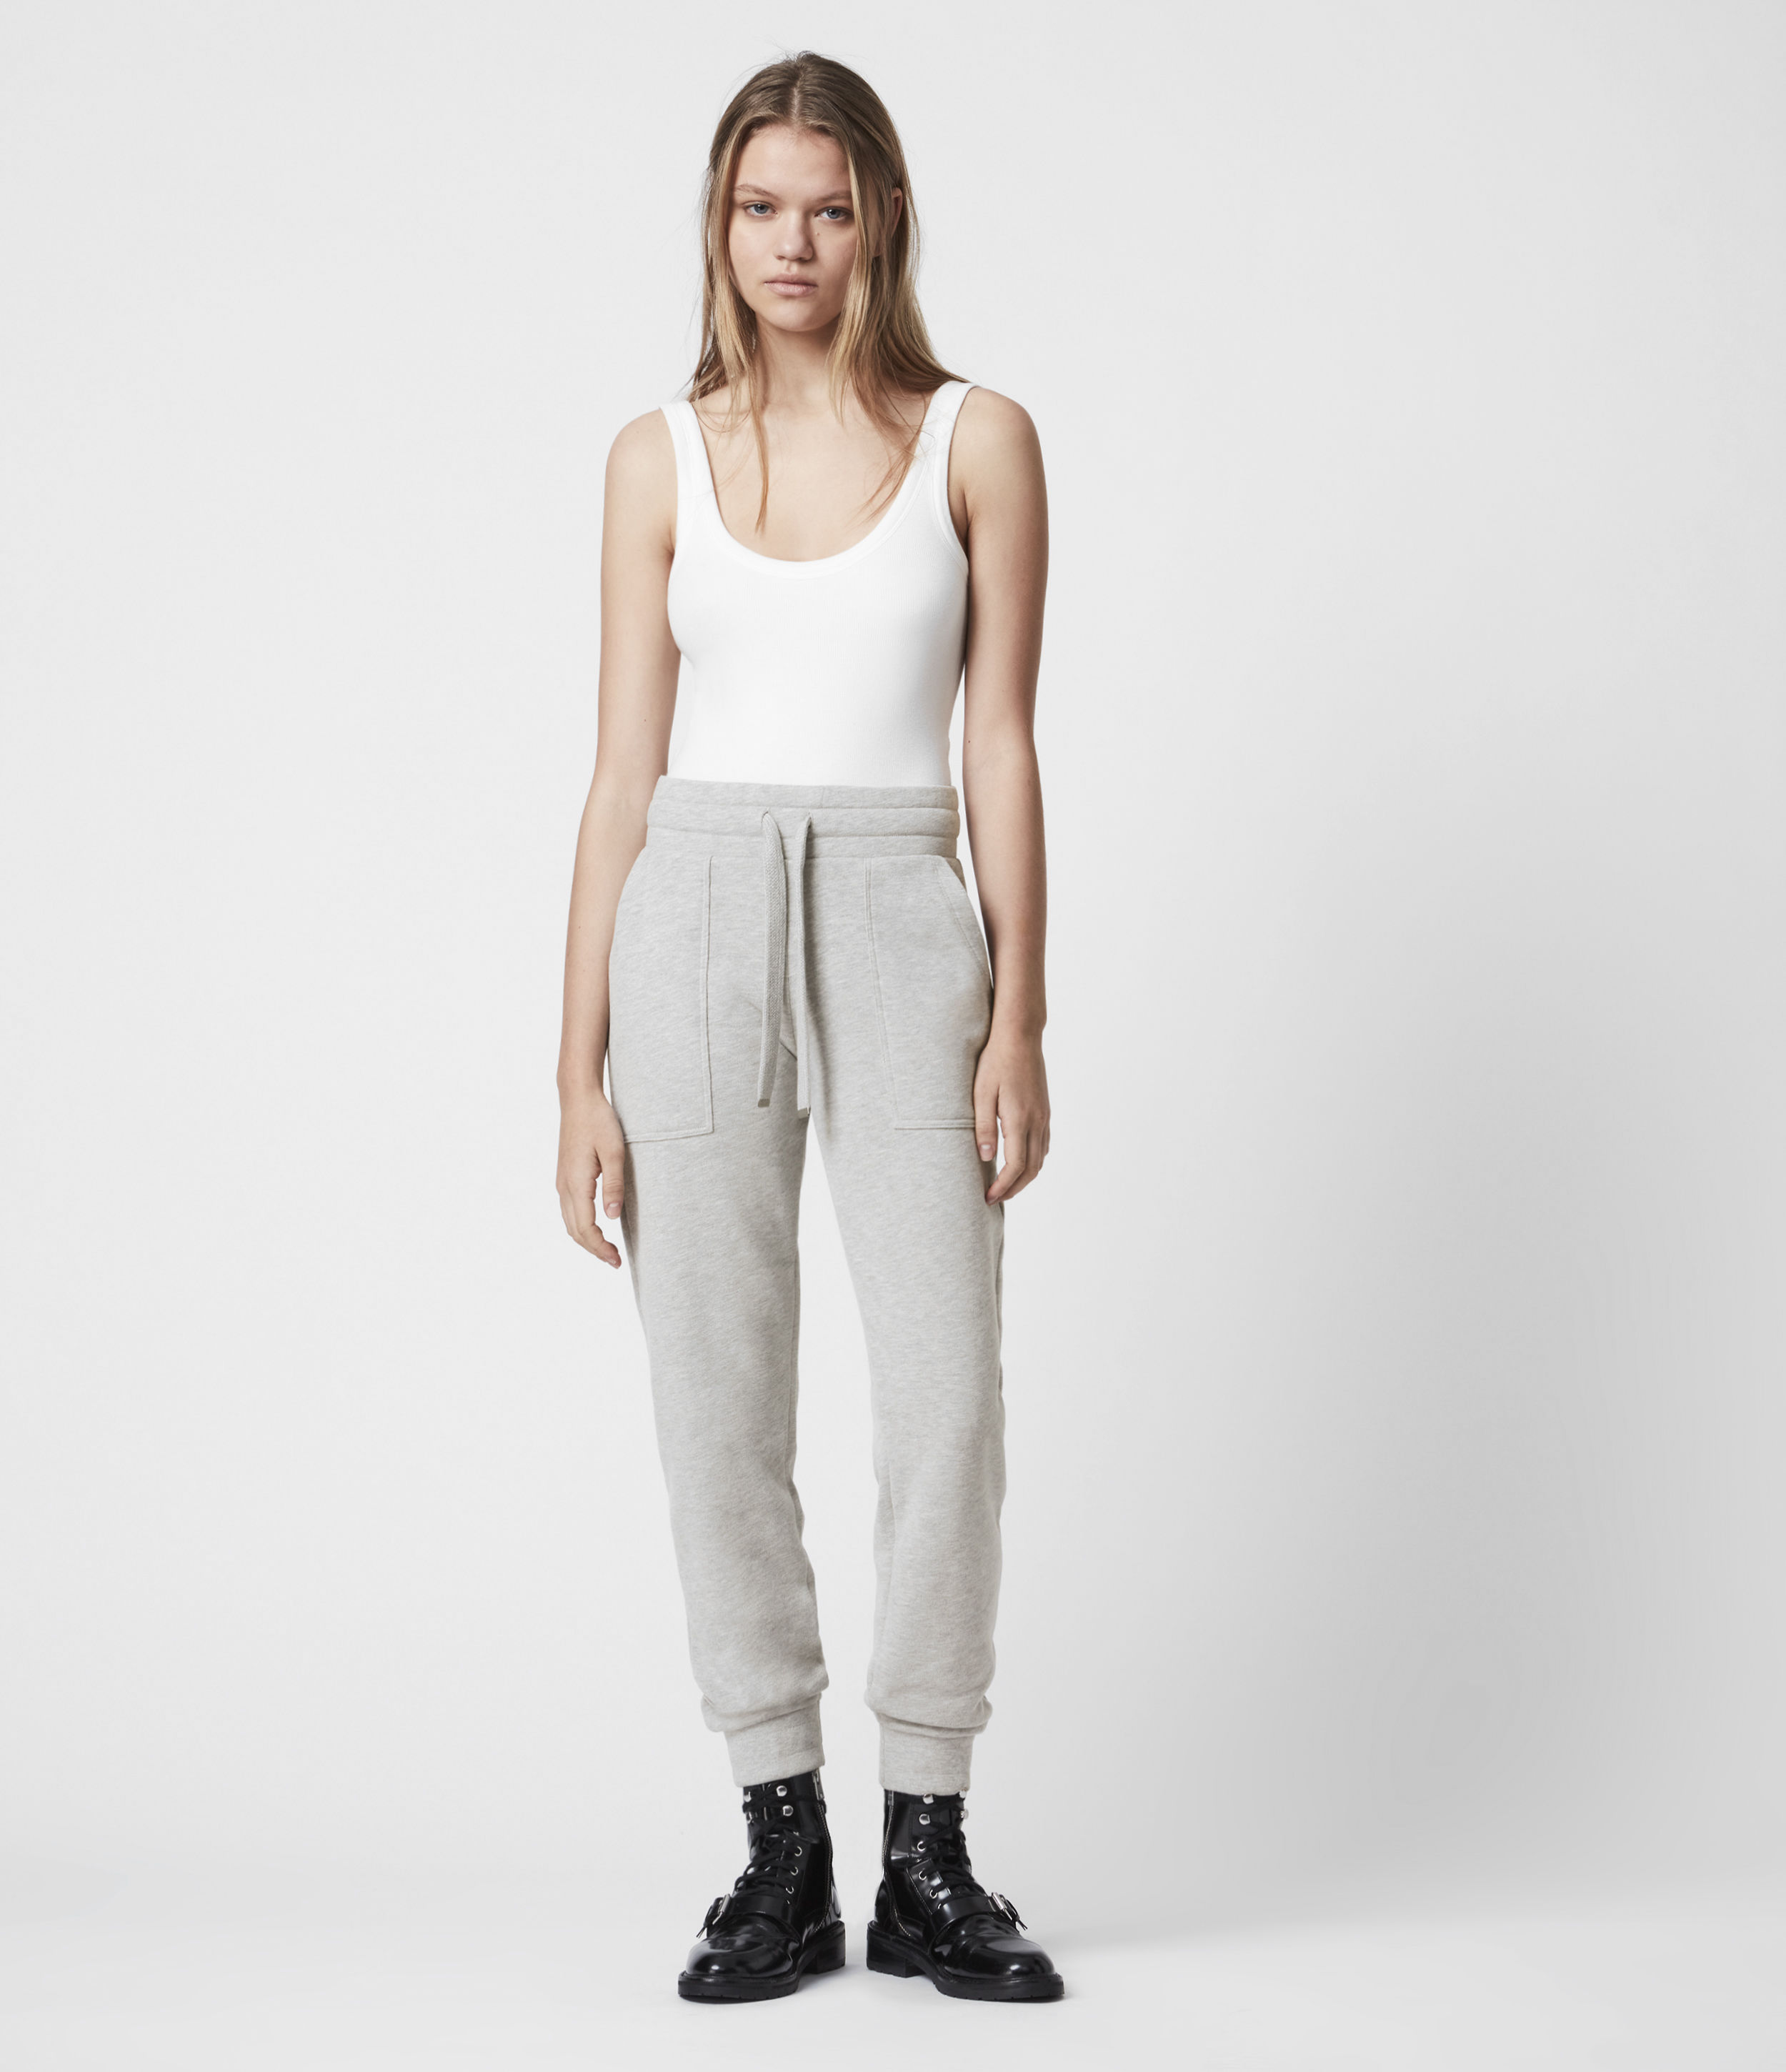 Allsaints ALLSAINTS LUCIA CUFFED RELAXED SWEATPANTS